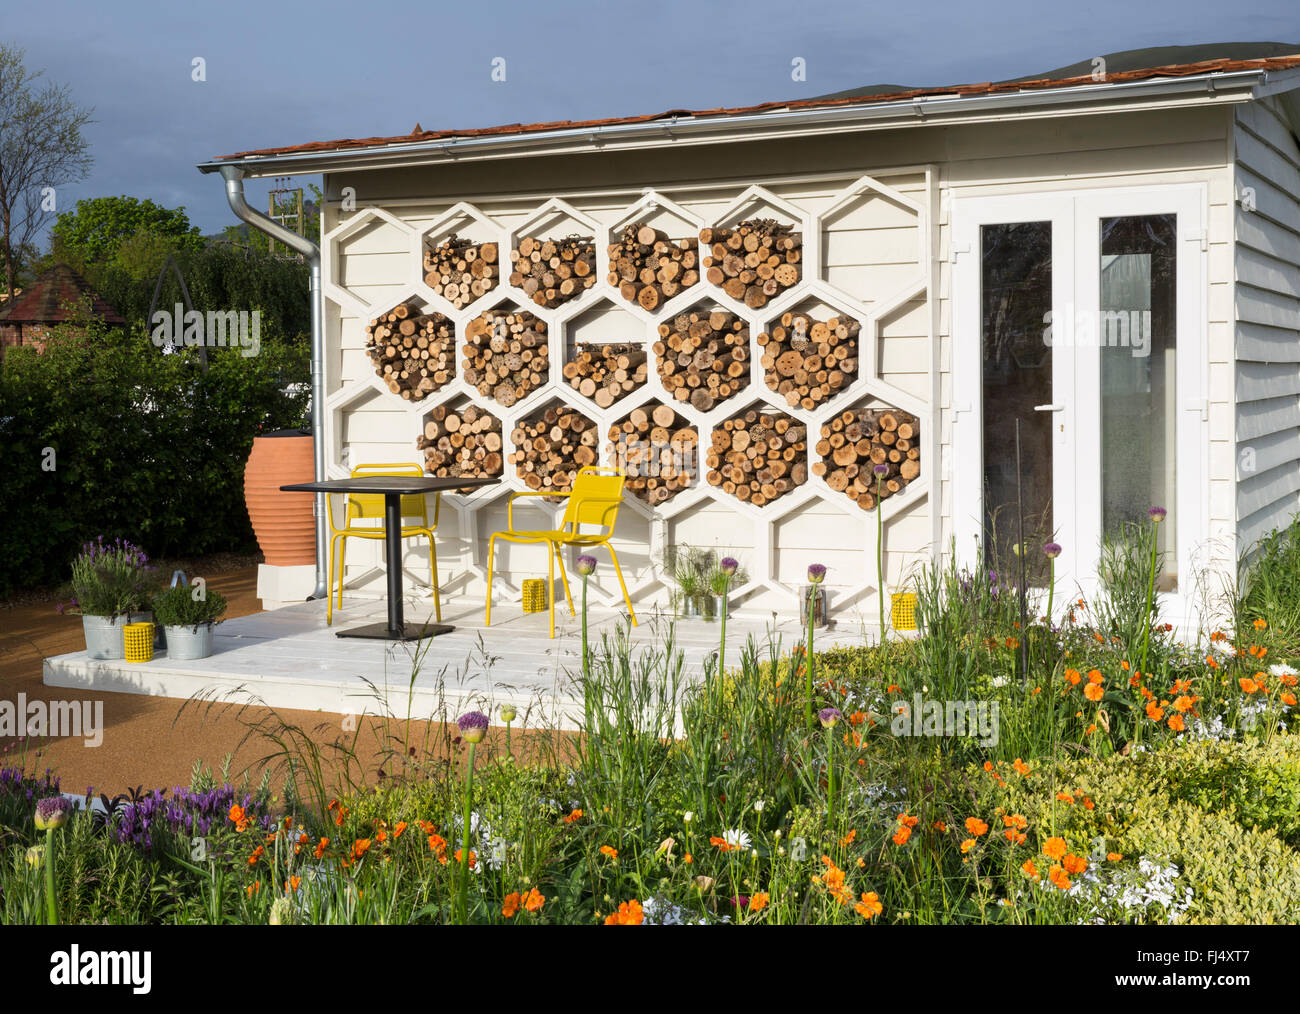 Garden summerhouse with hexagonal structures insect hotels habitat, wooden deck with table and chairs, bee friendly - Stock Image